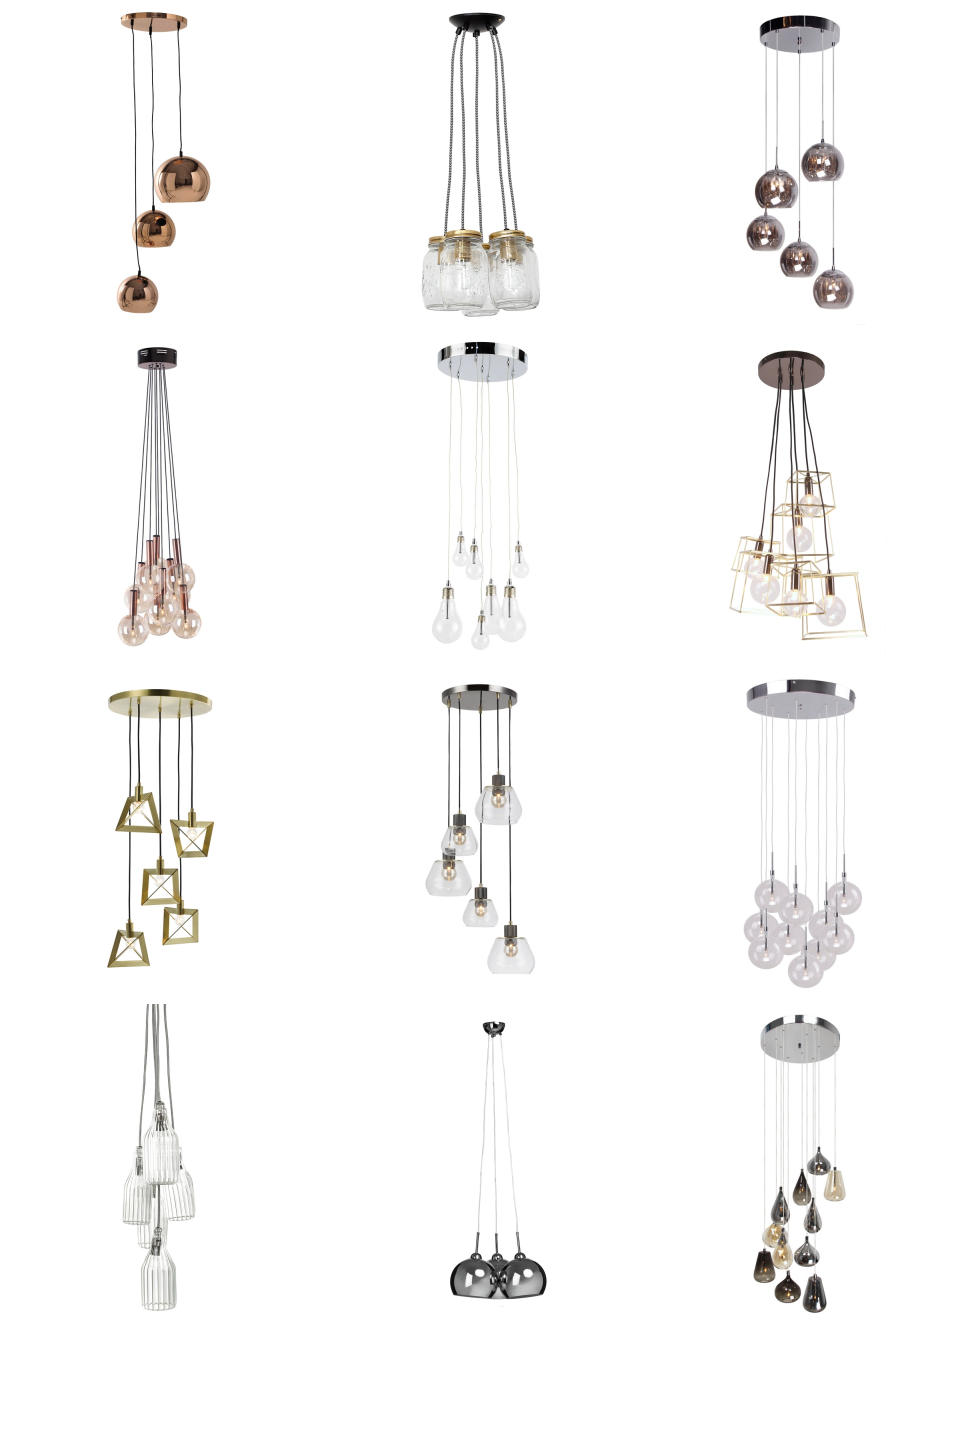 Cluster Lights Inspiration Board Cluster Ceiling Light Ideas For Your Hallway Dining Room Kitche Stair Lighting Pendant High Ceiling Lighting Stair Lighting